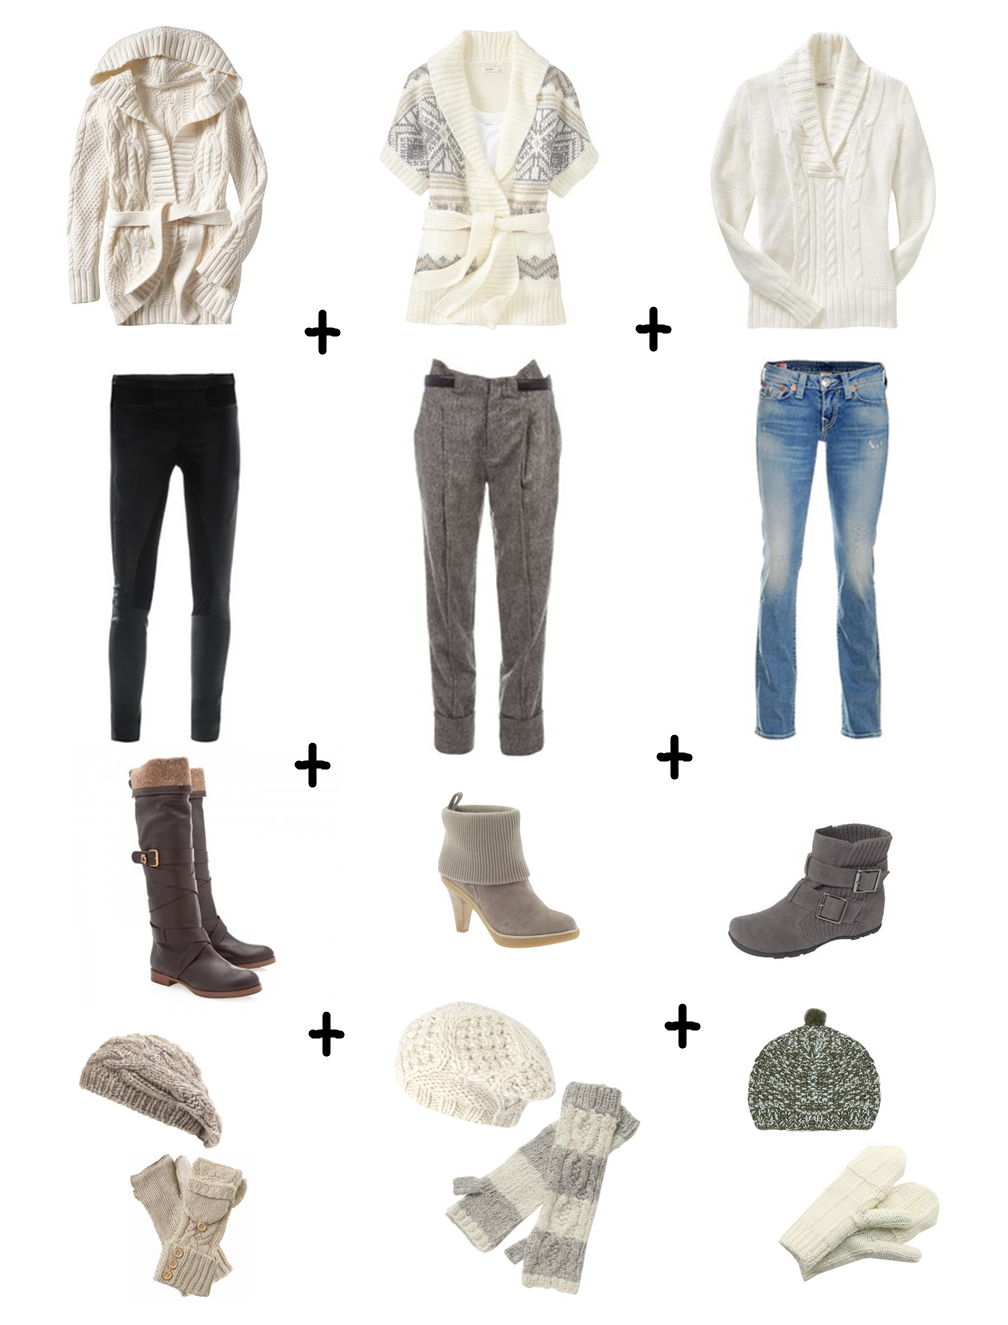 Cute Winter Outfits | Believe Impossible Things Cute Winter Outfit Ideas from Polyvore | my ...